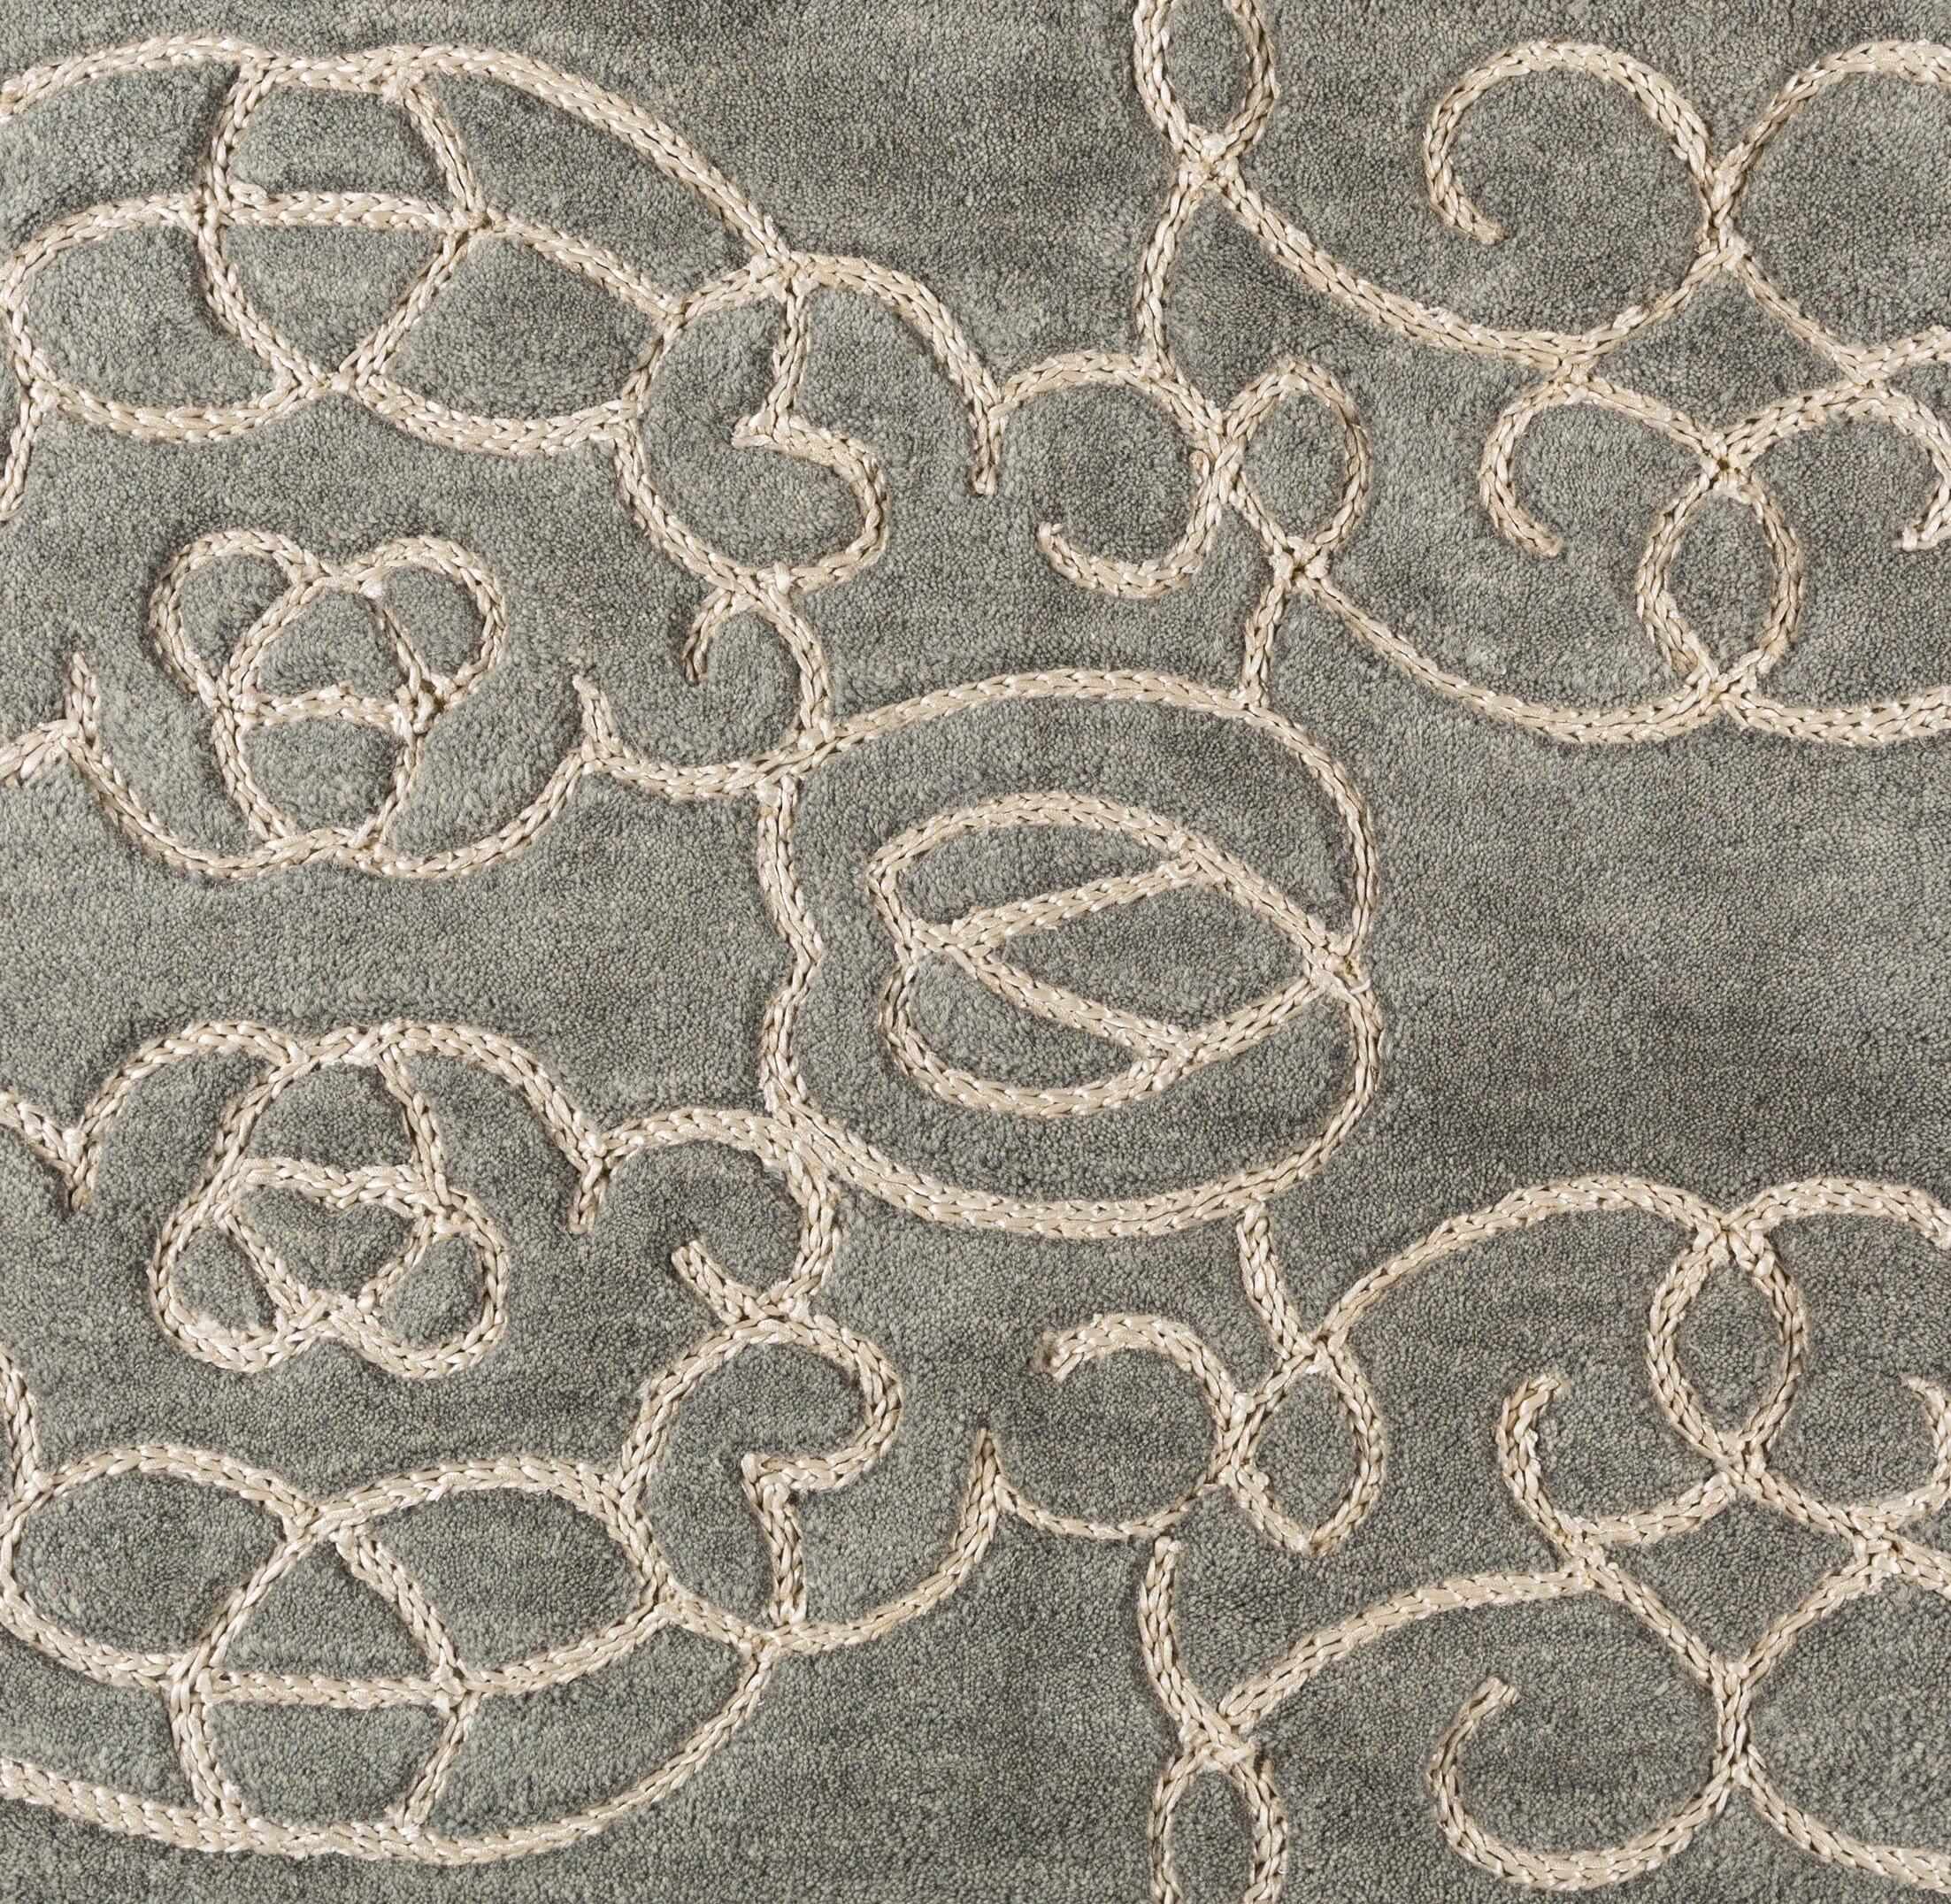 Desroches Hand-Tufted Green Area Rug Rug Size: Rectangle 8' x 10'